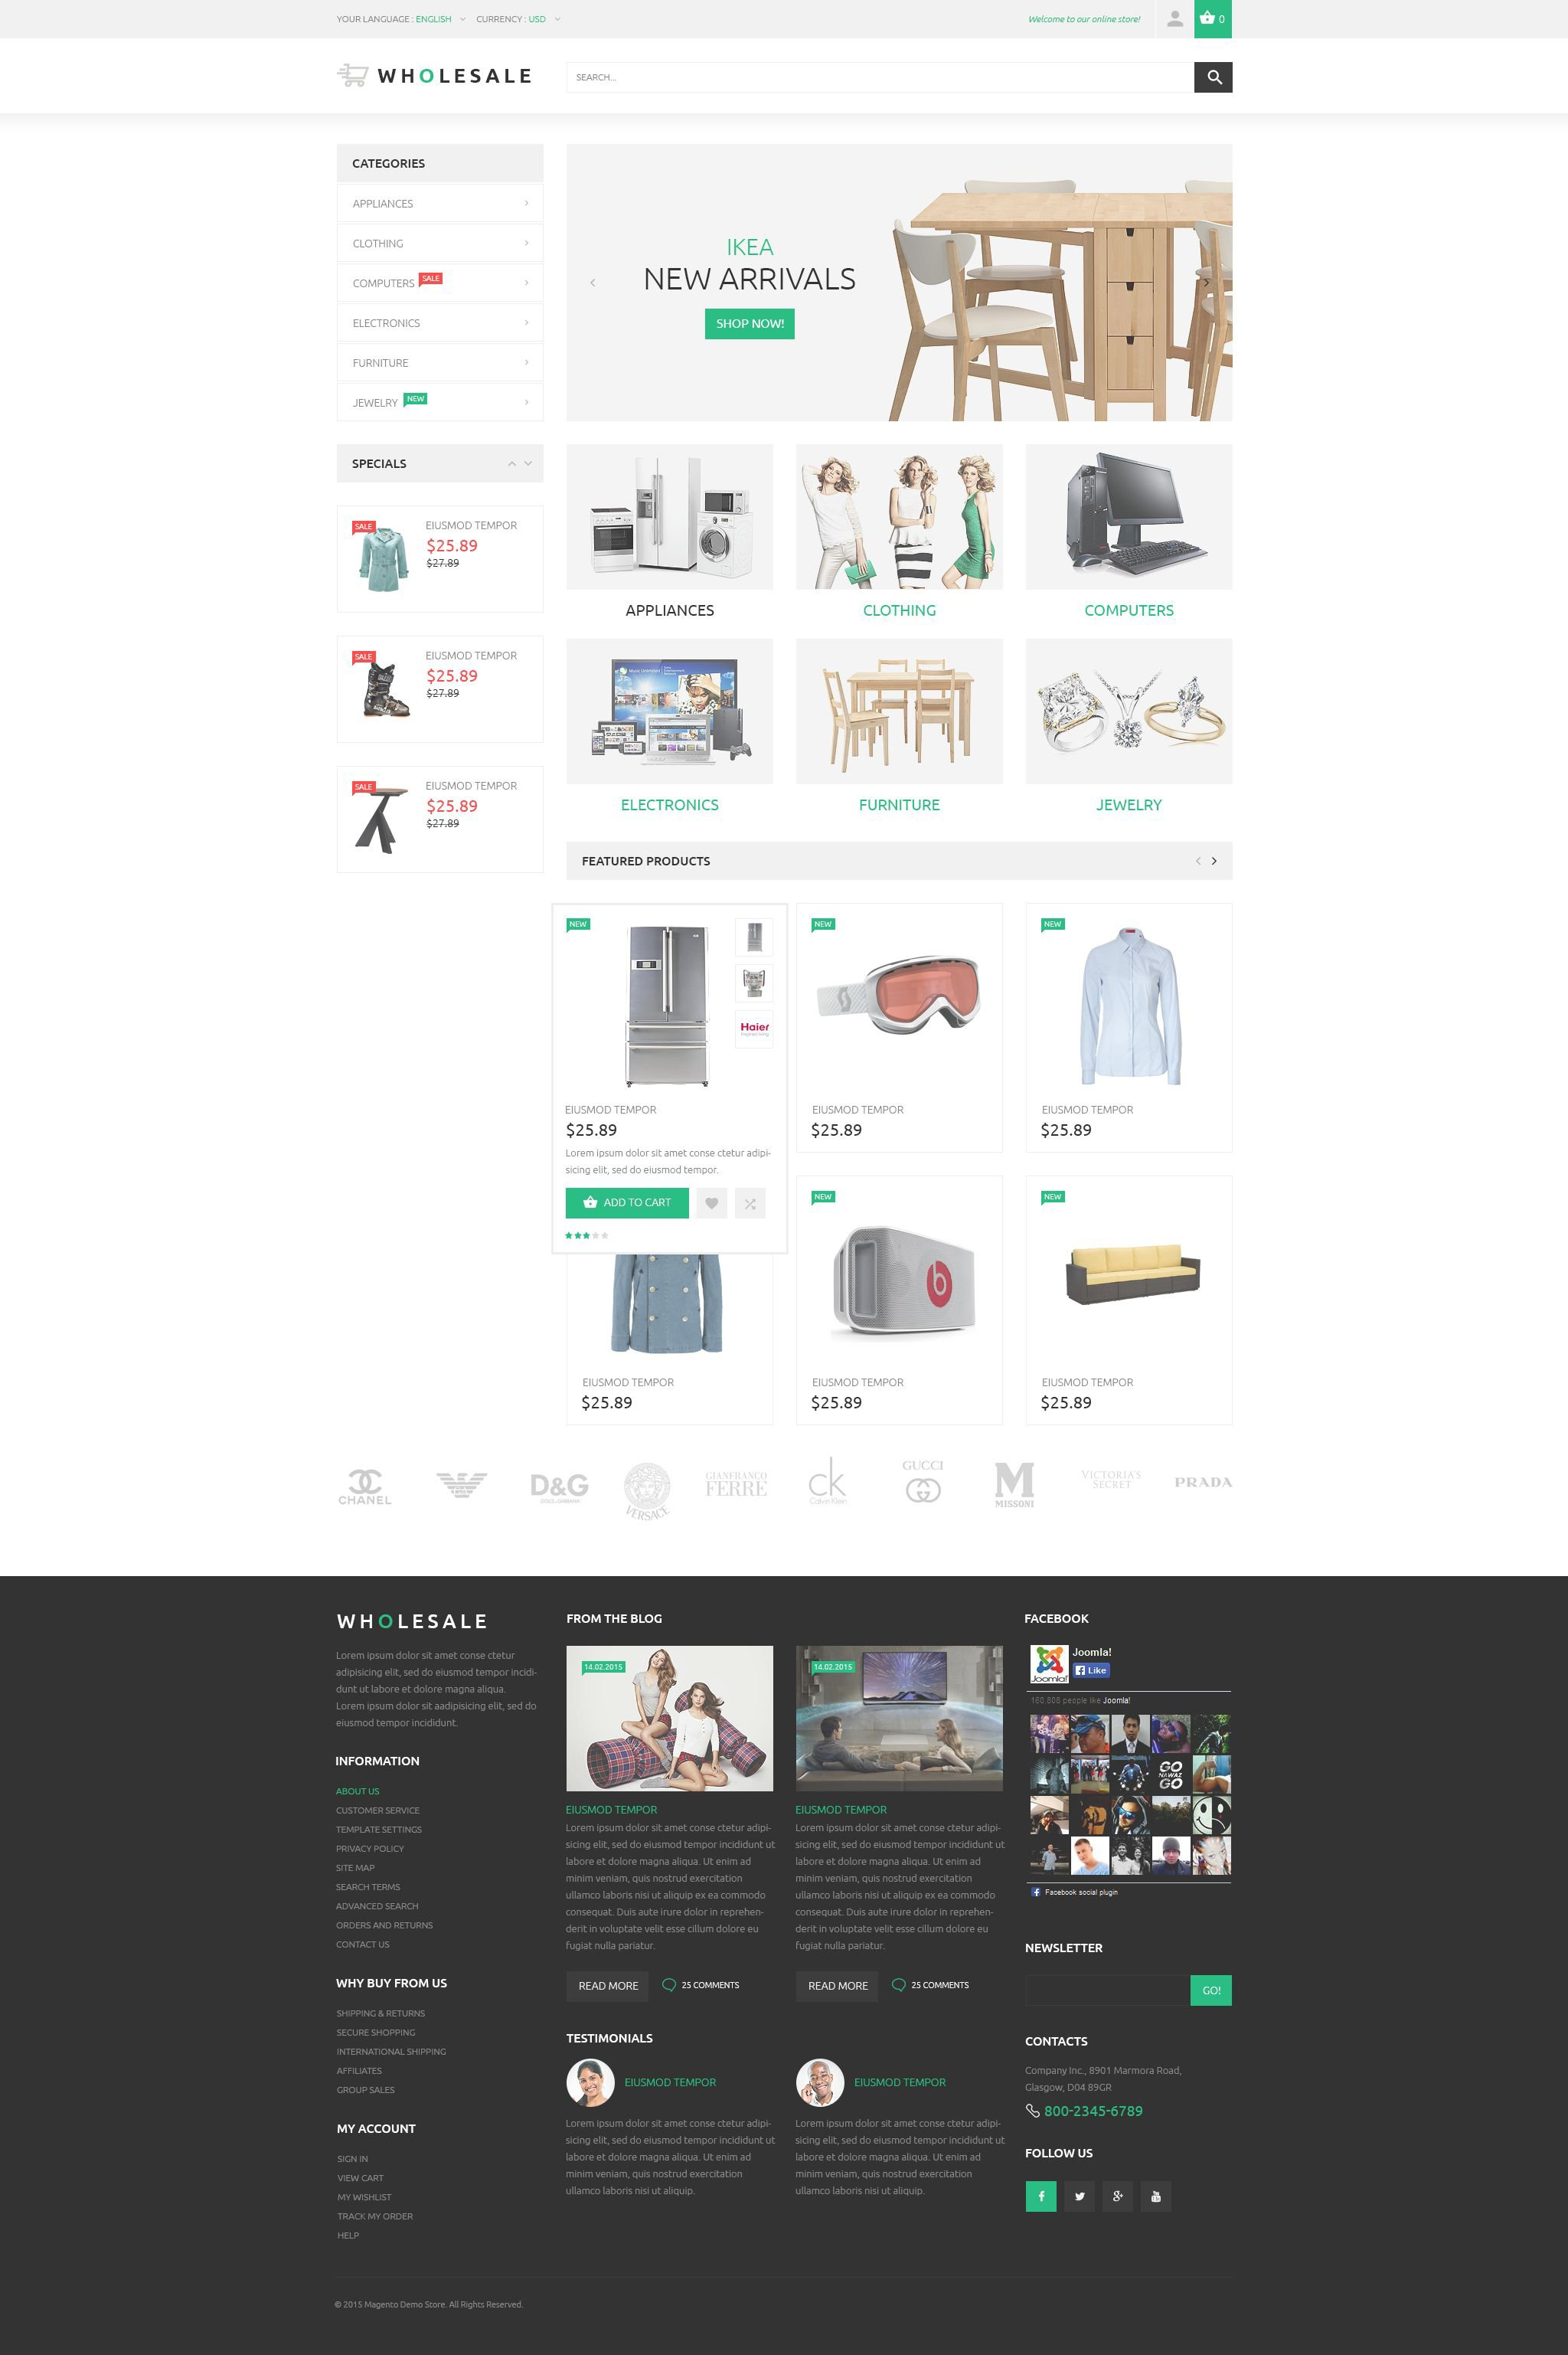 The Whole Sale Online Store Magento Design 53792, one of the best Magento themes of its kind (business, most popular), also known as whole sale online store Magento template, clothes Magento template, food Magento template, electronics Magento template, jewelry Magento template, pricing Magento template, baby Magento template, accessories Magento template, printers Magento template, funeral Magento template, furniture Magento template, gifts Magento template, decor Magento template, beauty and related with whole sale online store, clothes, food, electronics, jewelry, pricing, baby, accessories, printers, funeral, furniture, gifts, decor, beauty, etc.